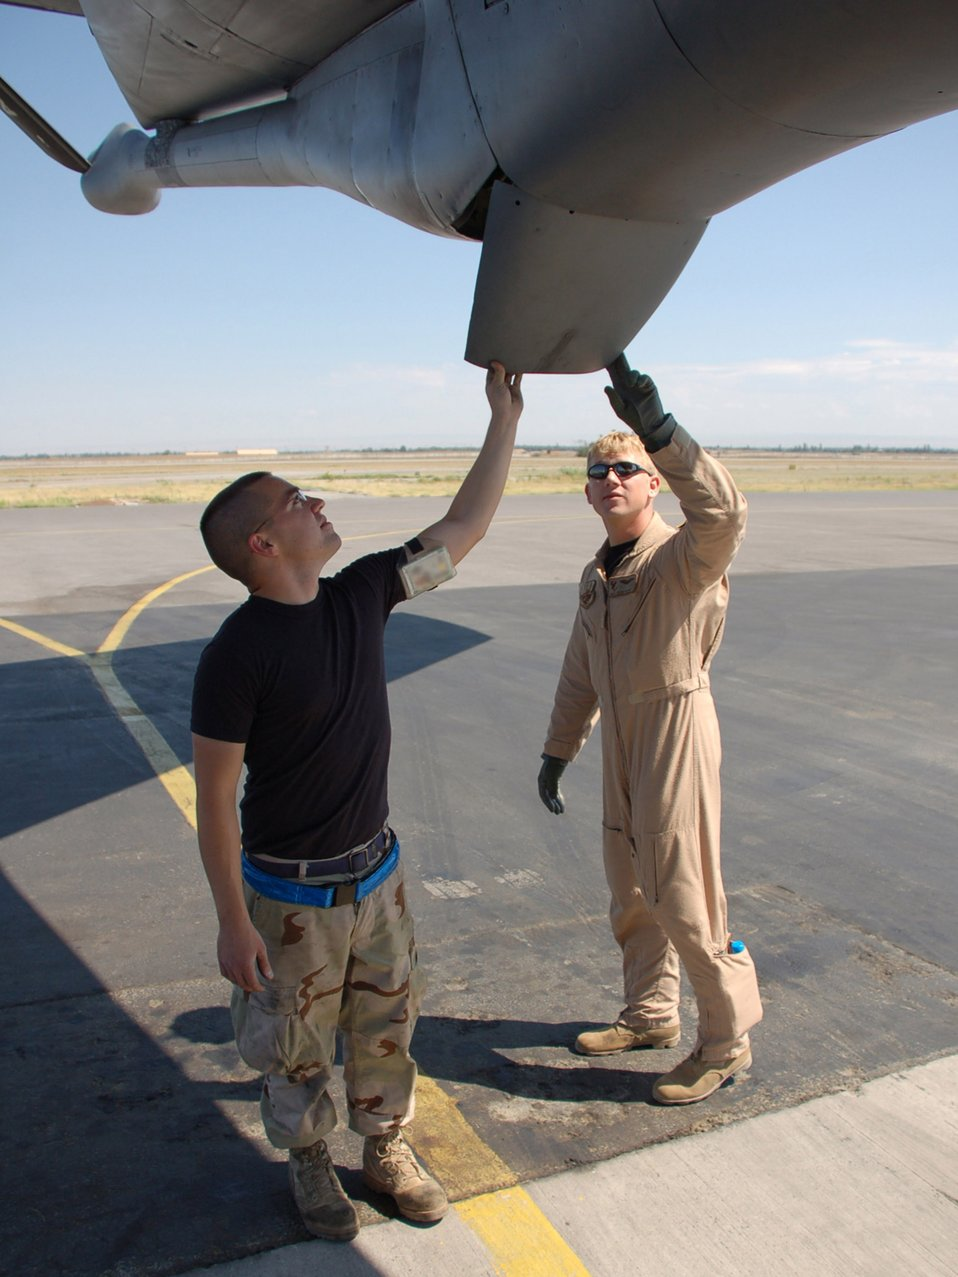 Expeditionary maintenance group gets fuel flying